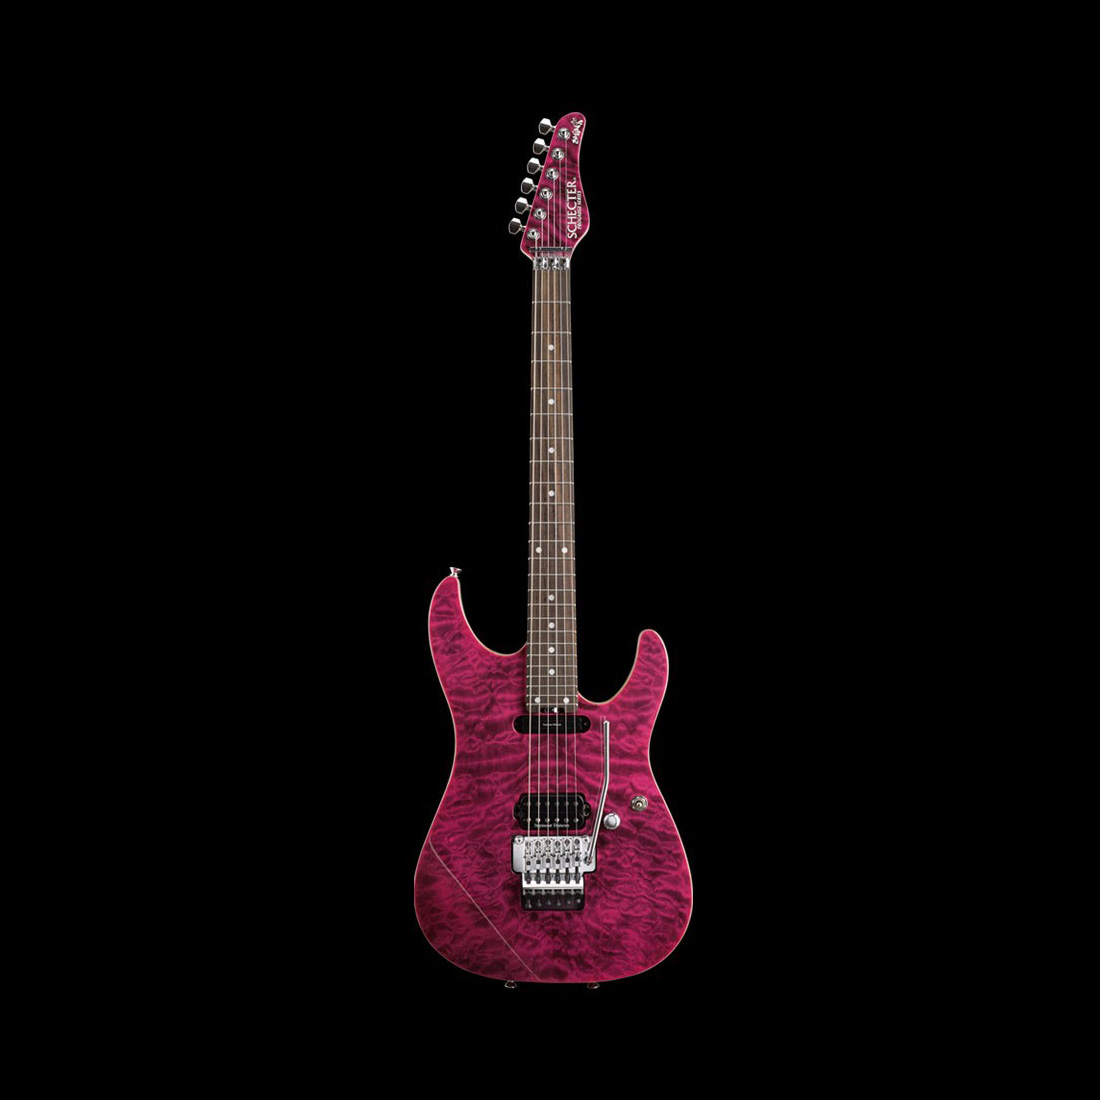 Schecter / PA-ZK-Y6 Pink Berry シェクター エレキギター 小林信一シグネイチャー 【お取り寄せ商品/納期別途ご案内】